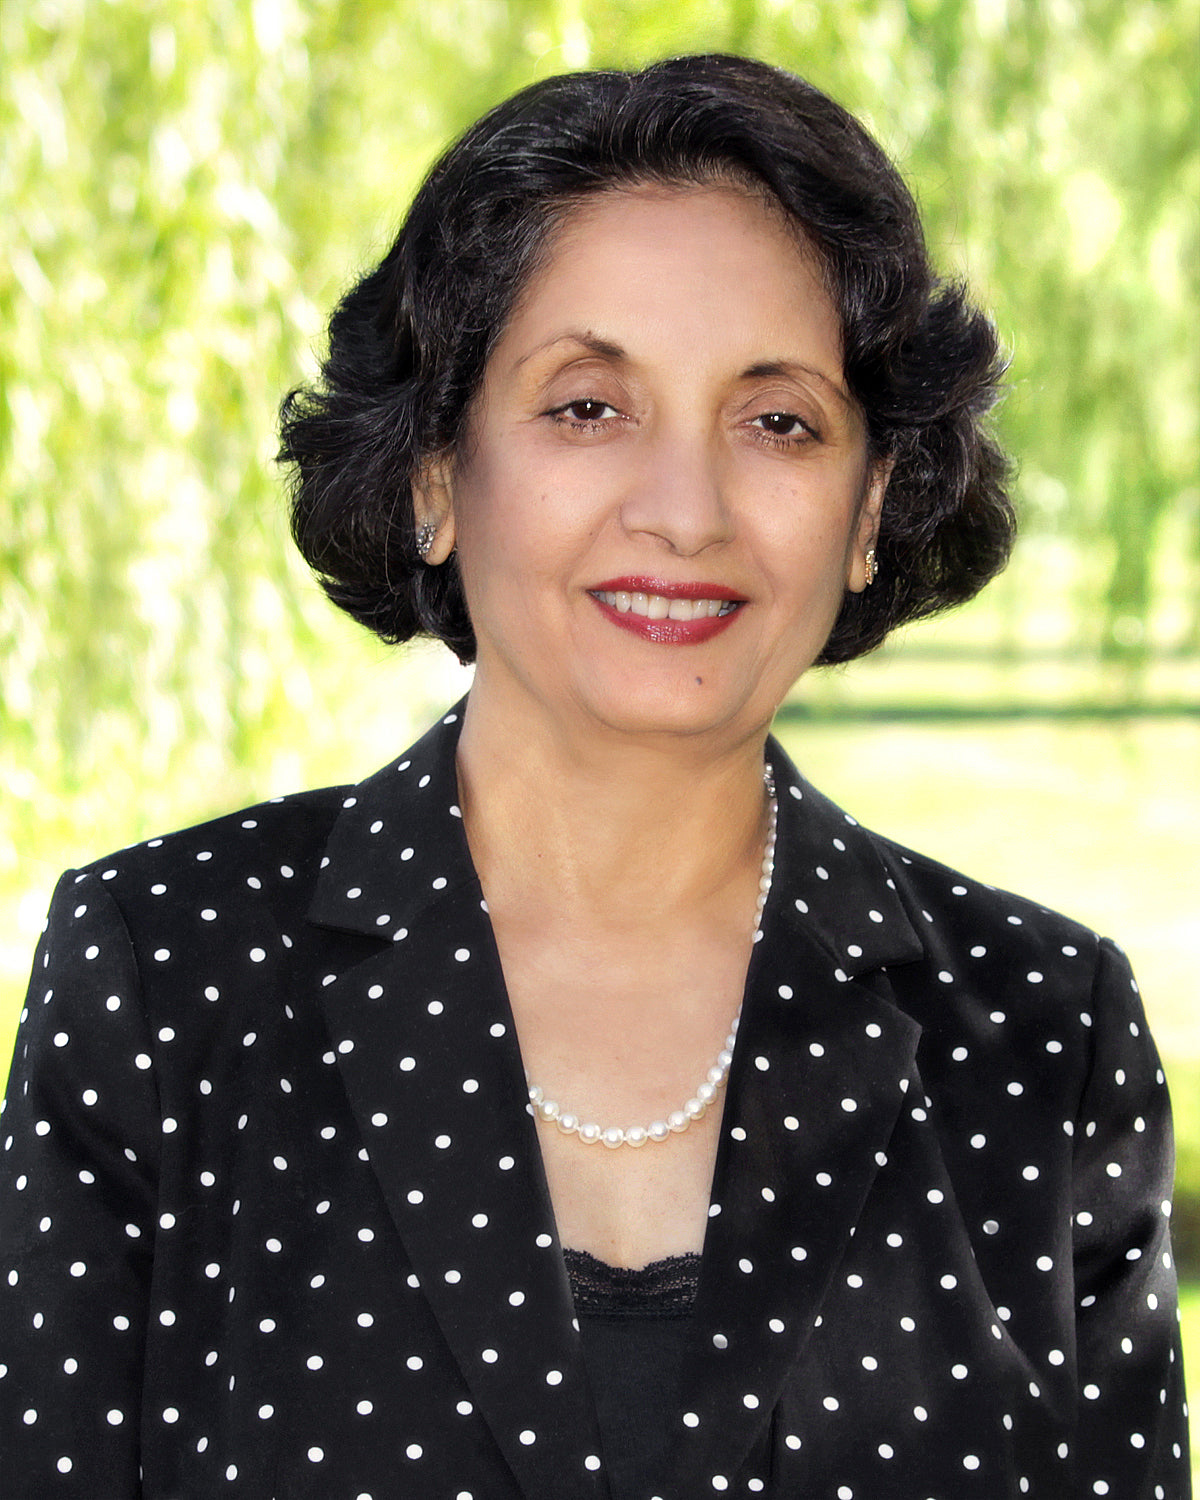 Neelam Toprani, founder of the ayurvedic company, Padmashri Naturals Inc.